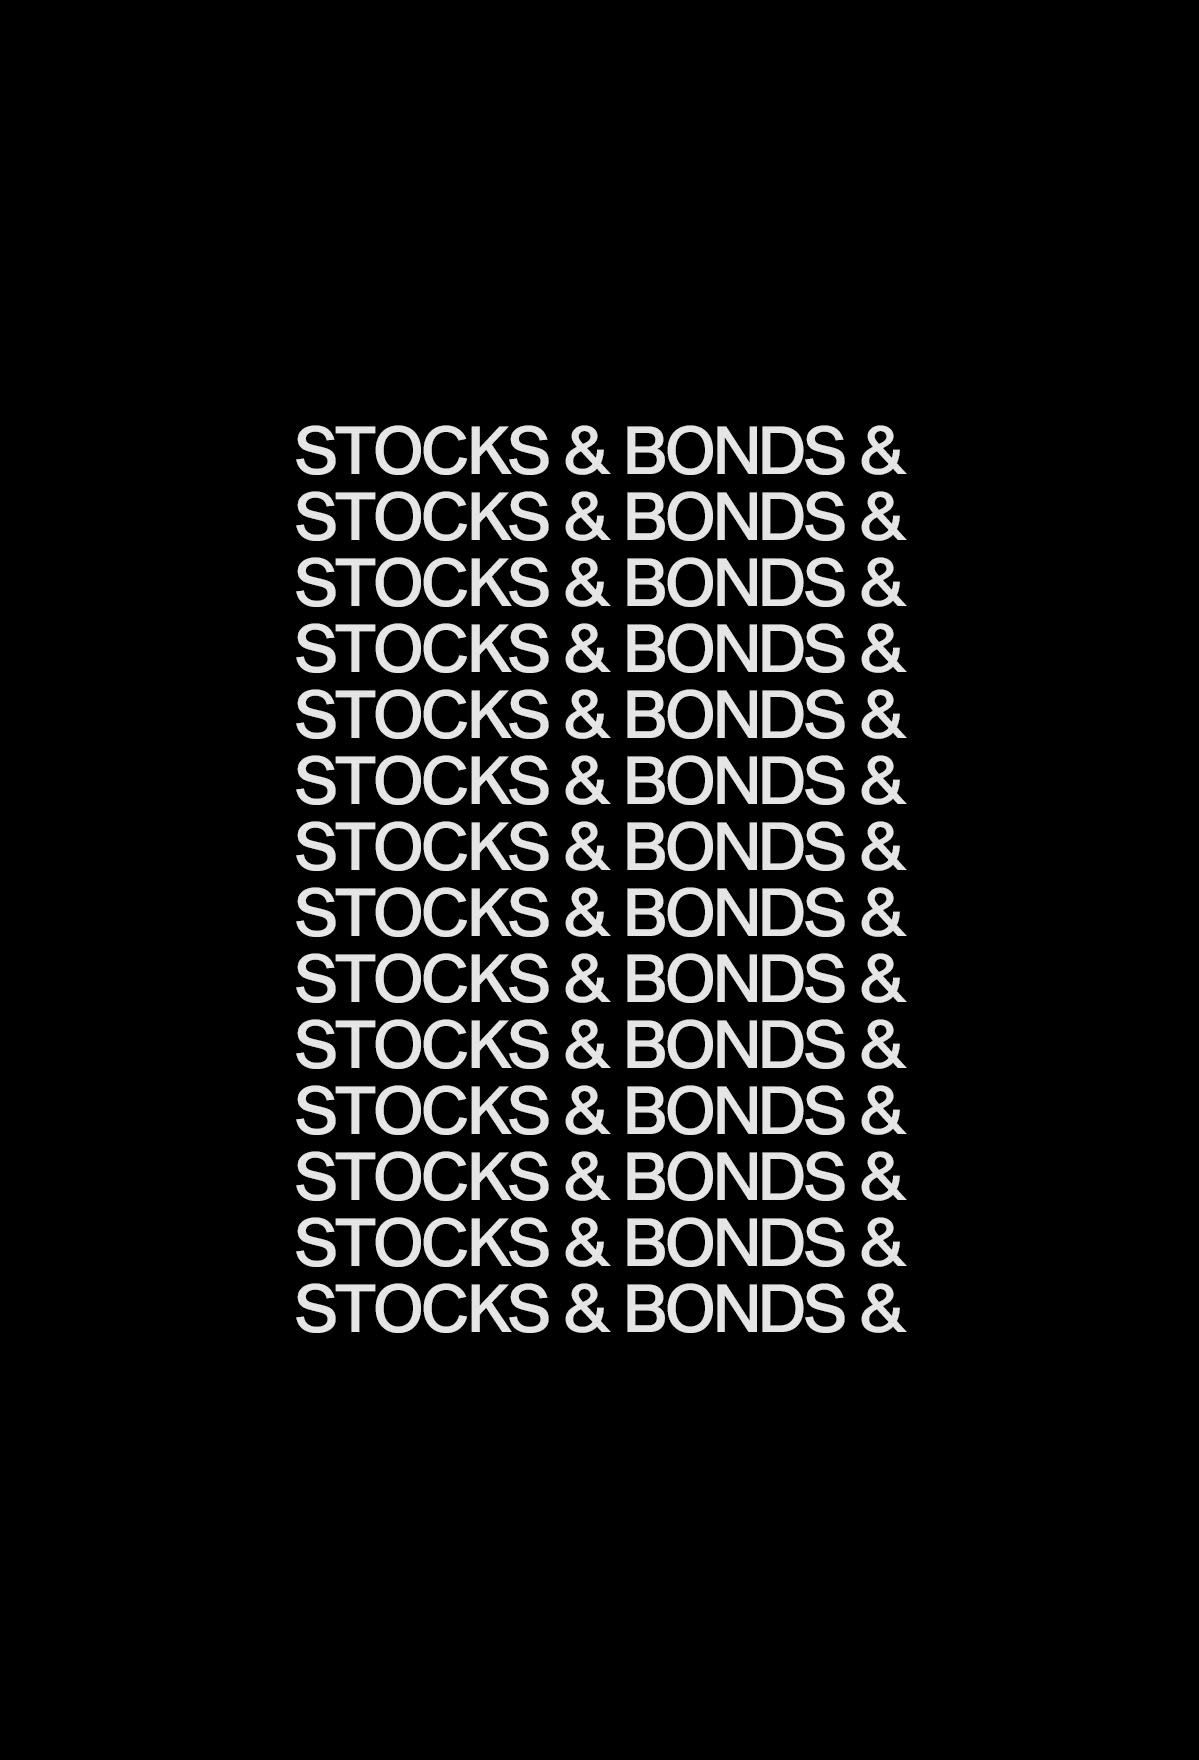 Bonds Versus Stocks: What Are the Main Differences?